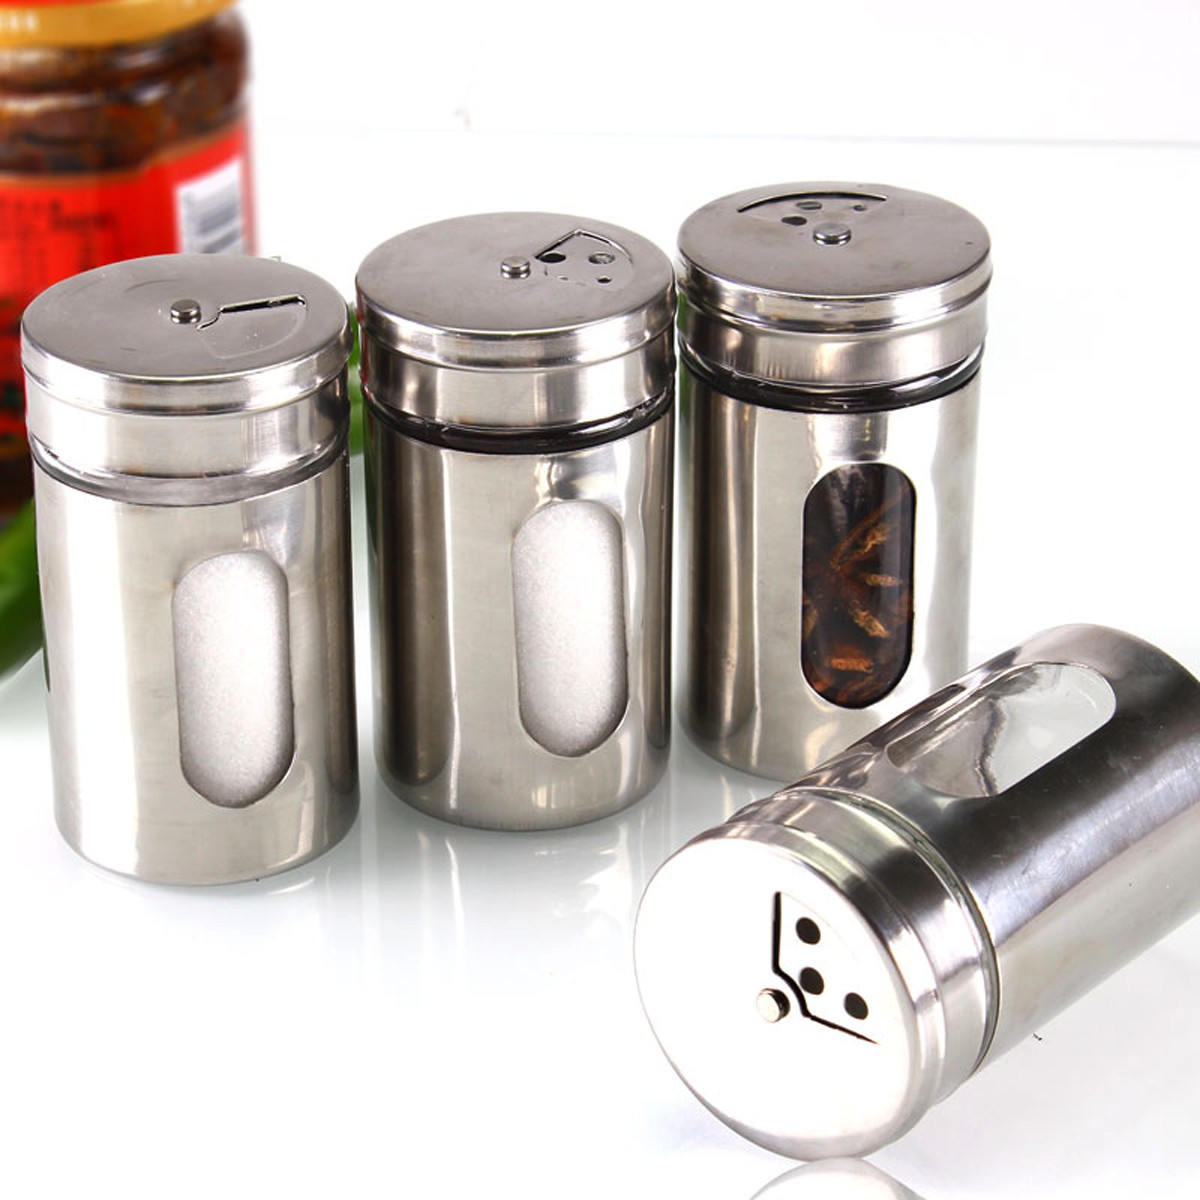 1 Pcs Hot 4 Different Needs Rotating Holes Spice Jars Condiment Pot Salt Pepper Kitchen Storage Stainless Steel Glass Container